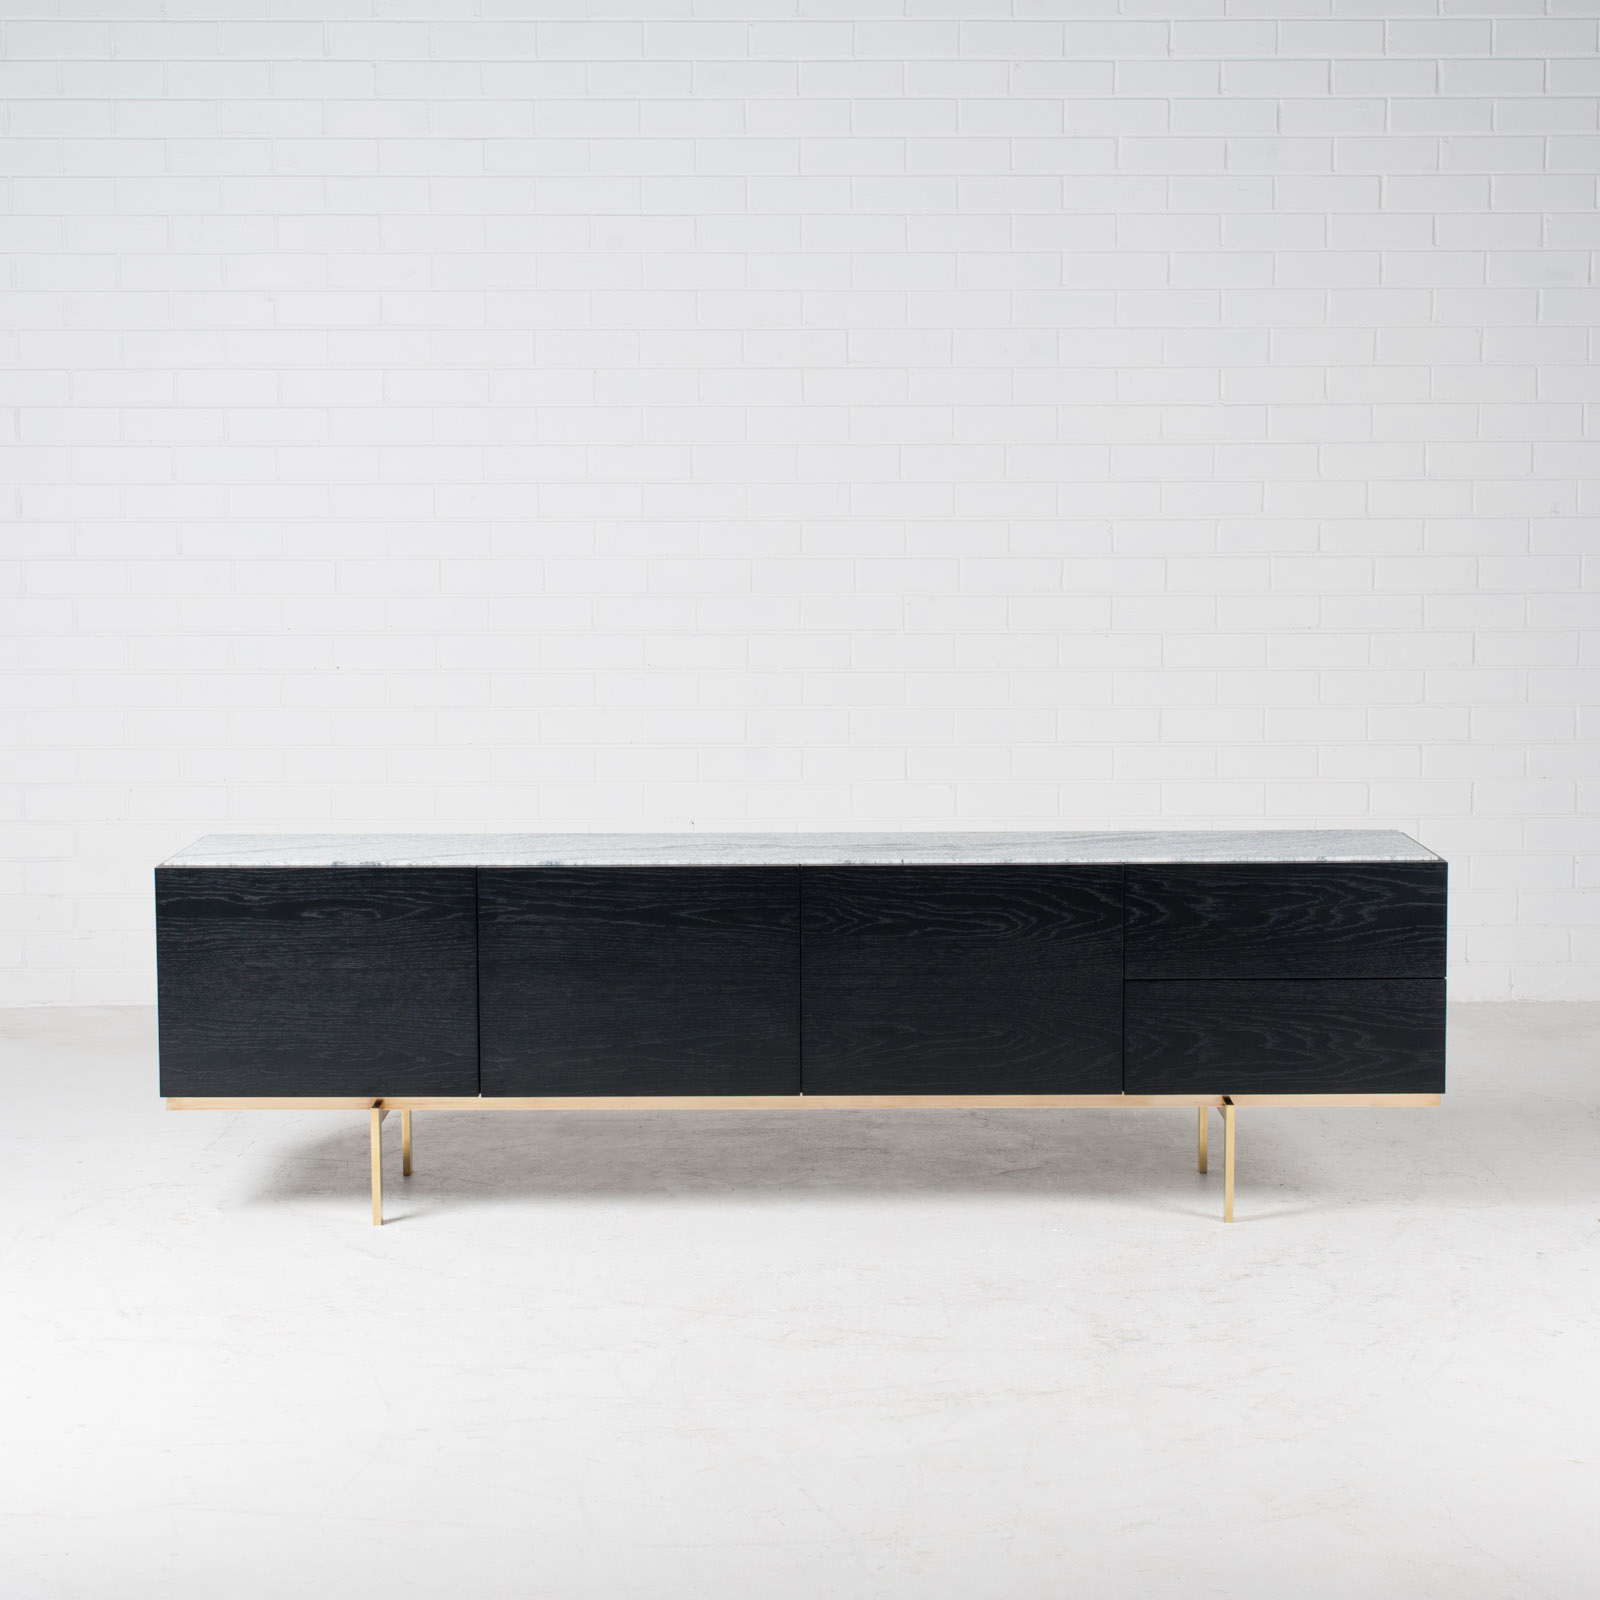 Shoreline Sideboard By Mt Studio For Modern Times 2018 Australia 04